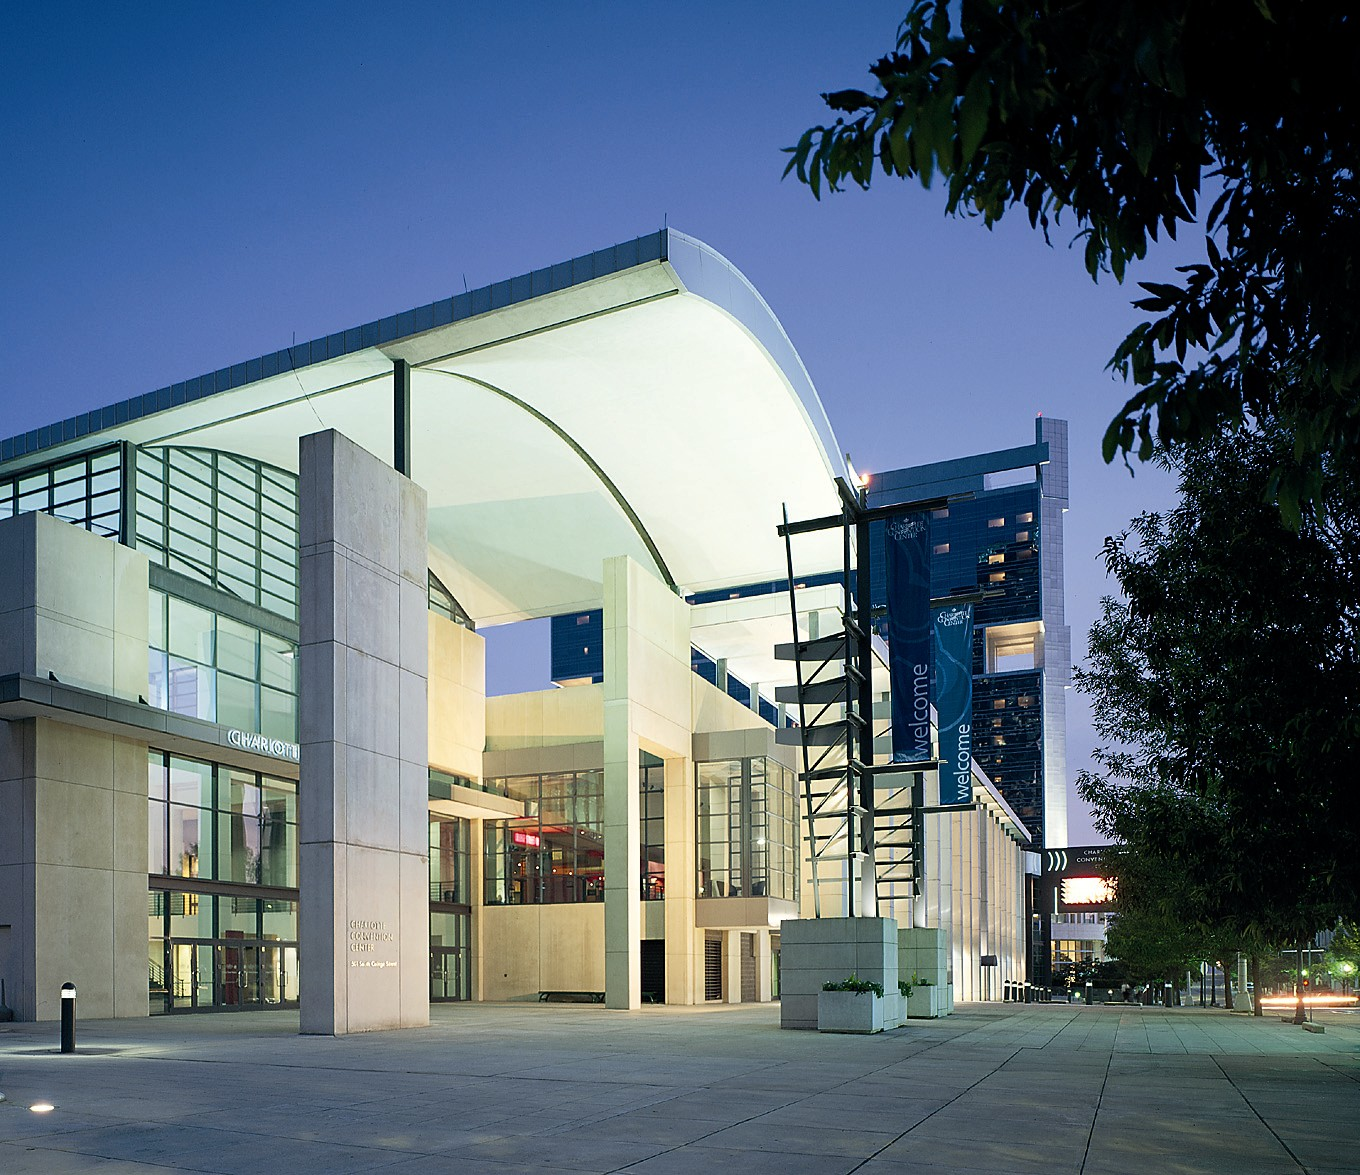 Smart City Networks implements significant technology upgrade at Charlotte Convention Center